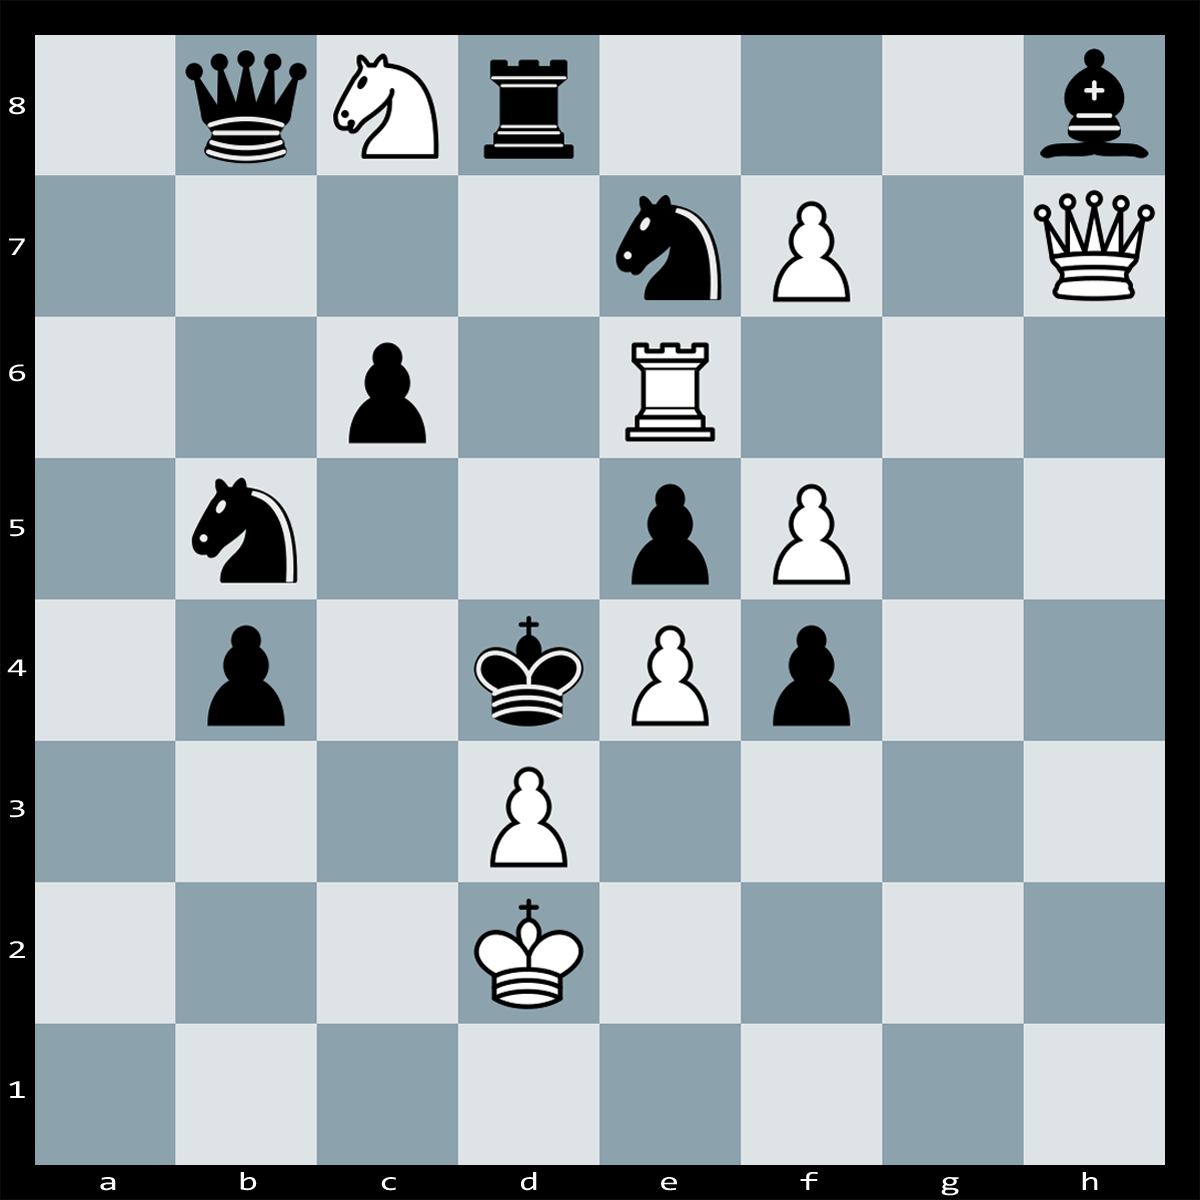 mate in 5 chess